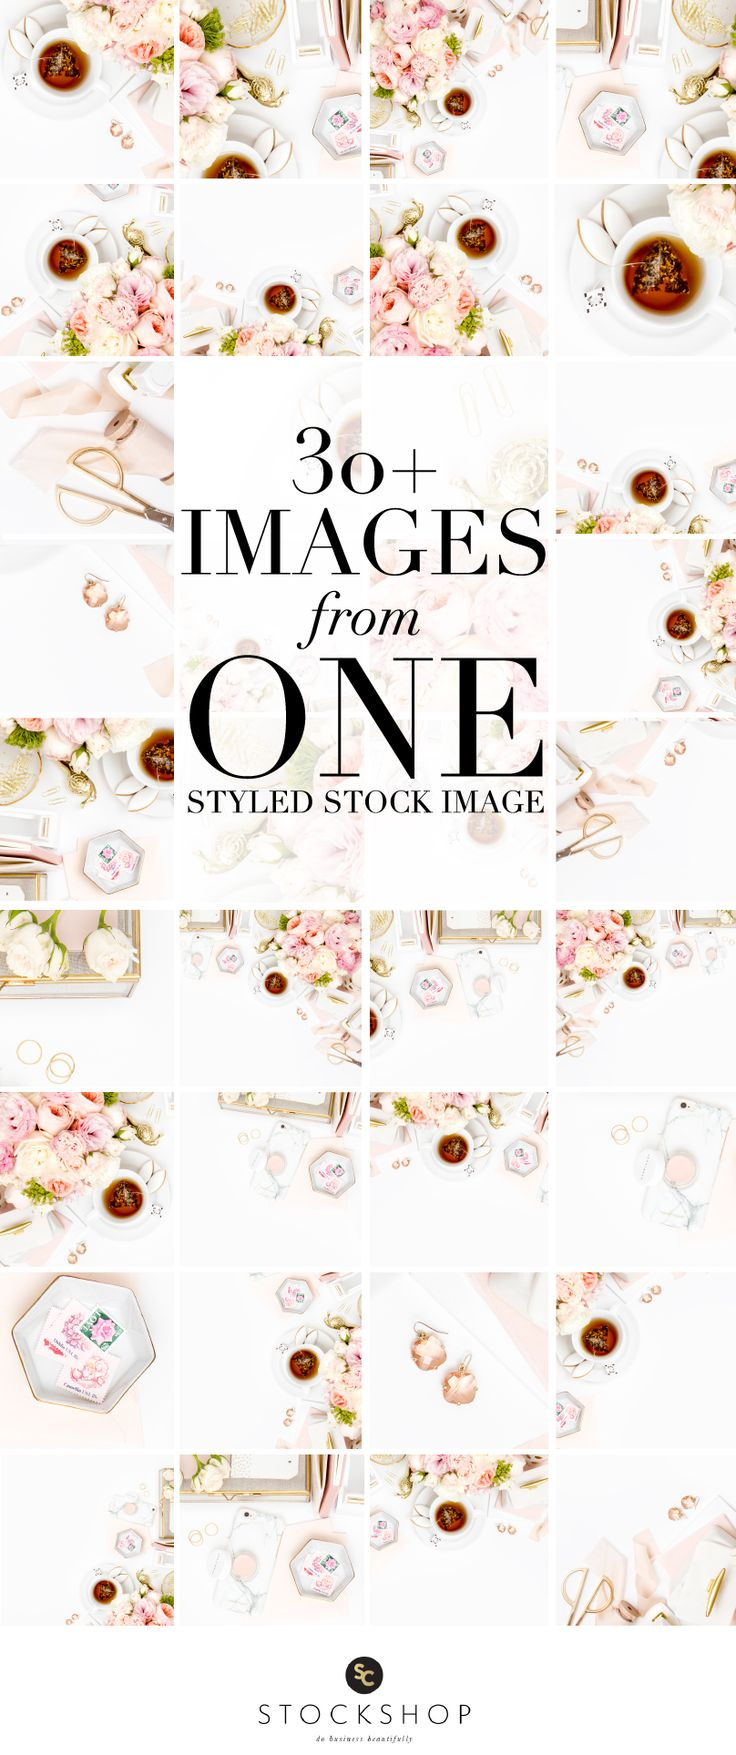 Photography Jobs Online - Learn how to use styled stock photography! Create 30  Instagram images from a single styled stock image! Blush pink and gold desktop image collection. - Photography Jobs Online | Get Paid To Take Photos!